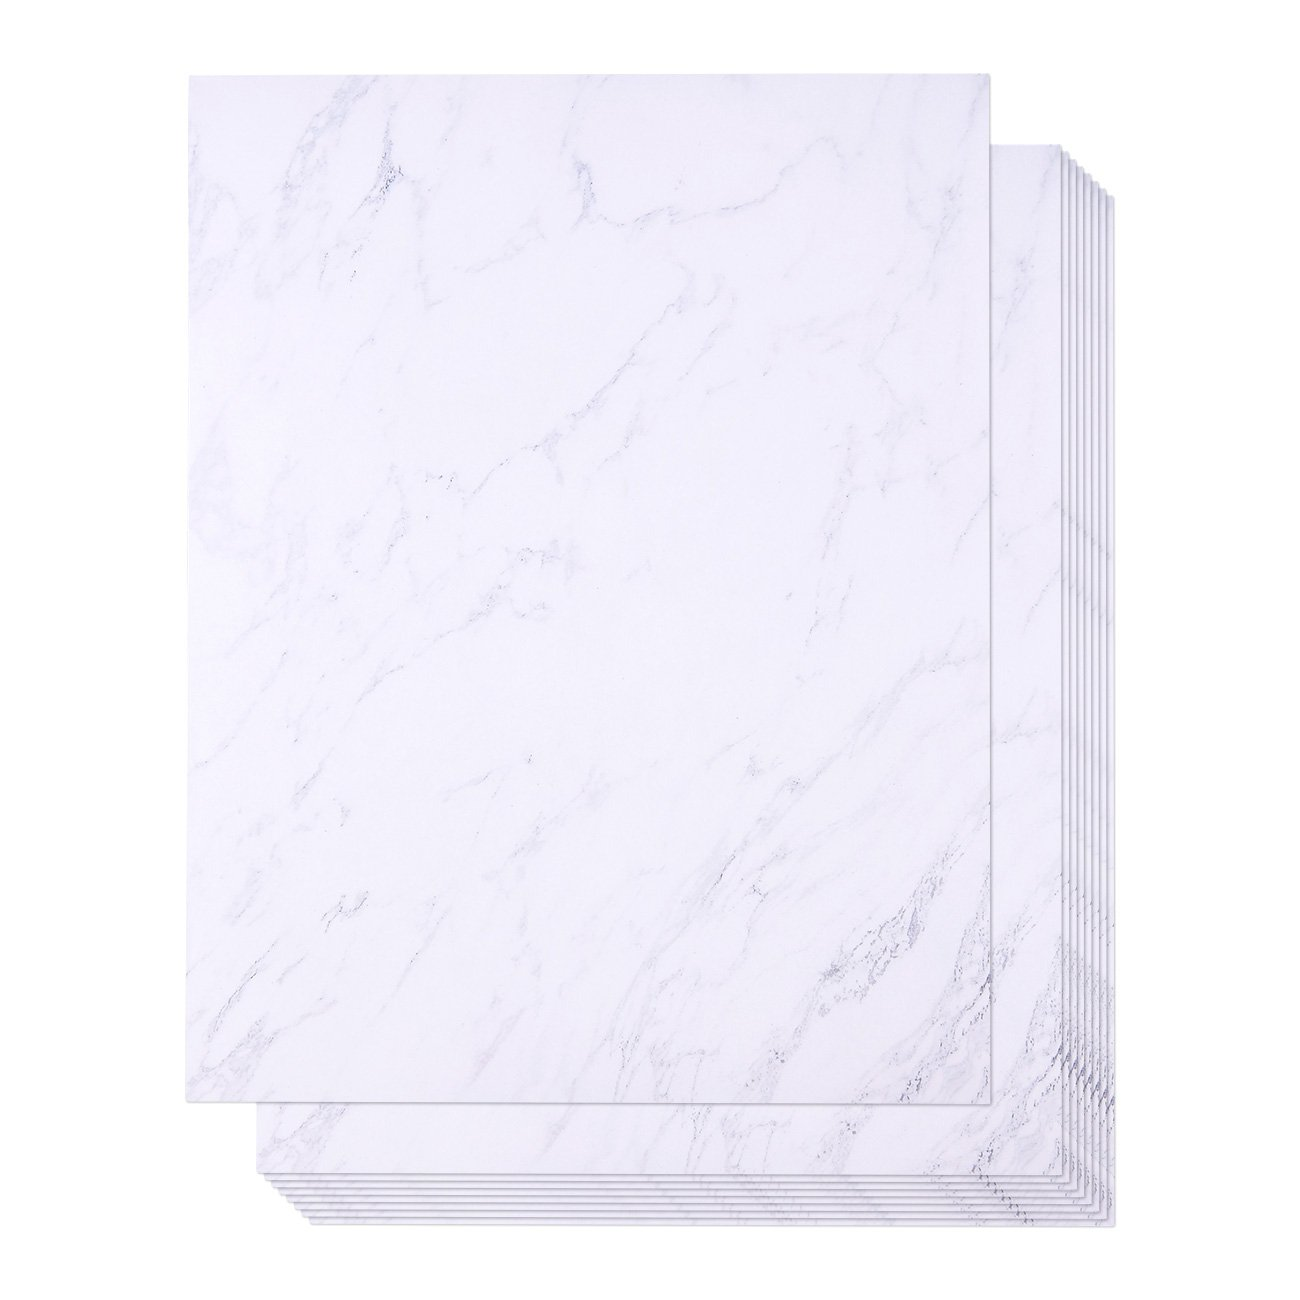 48 Pack Marble Stationery Paper - Letterhead - Decorative Design Paper - Double Sided - Printer Friendly, 8.5 x 11 Inch Letter Size Sheets Juvale